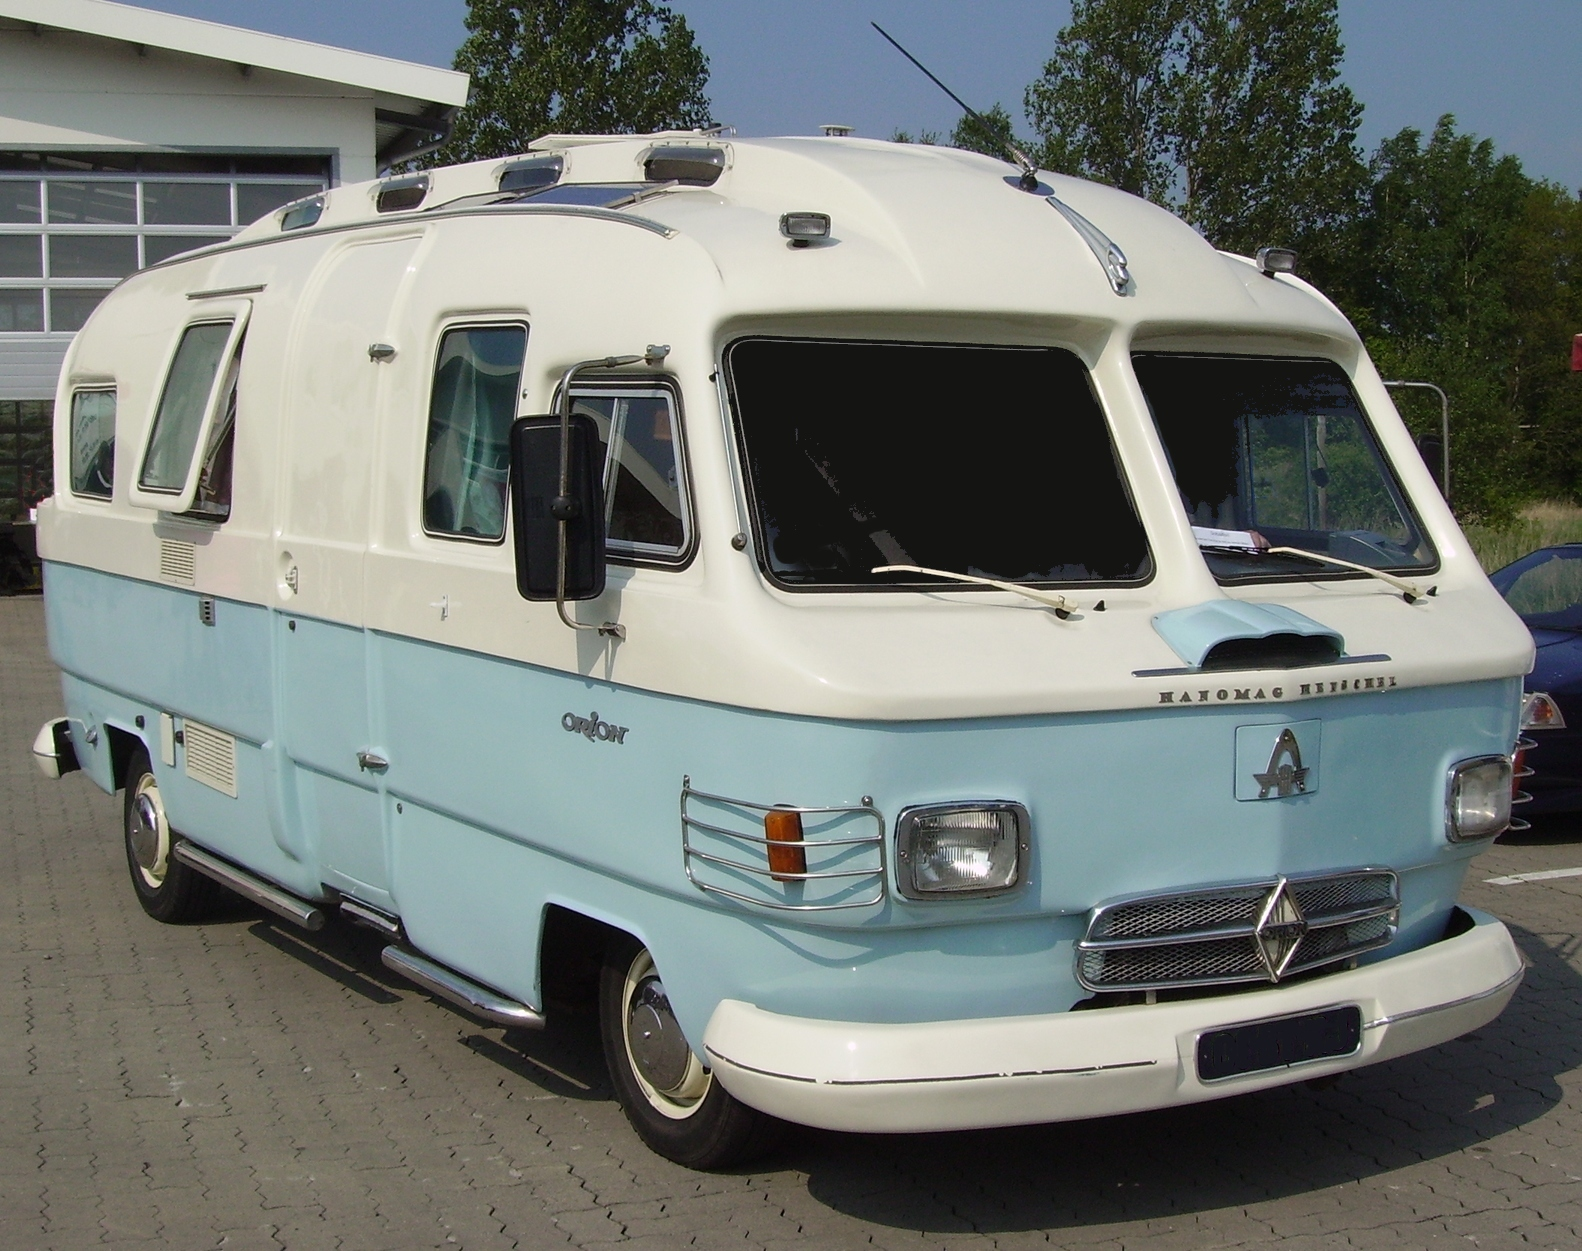 Recreational Vehicle 1969 Dodge Camper Van History